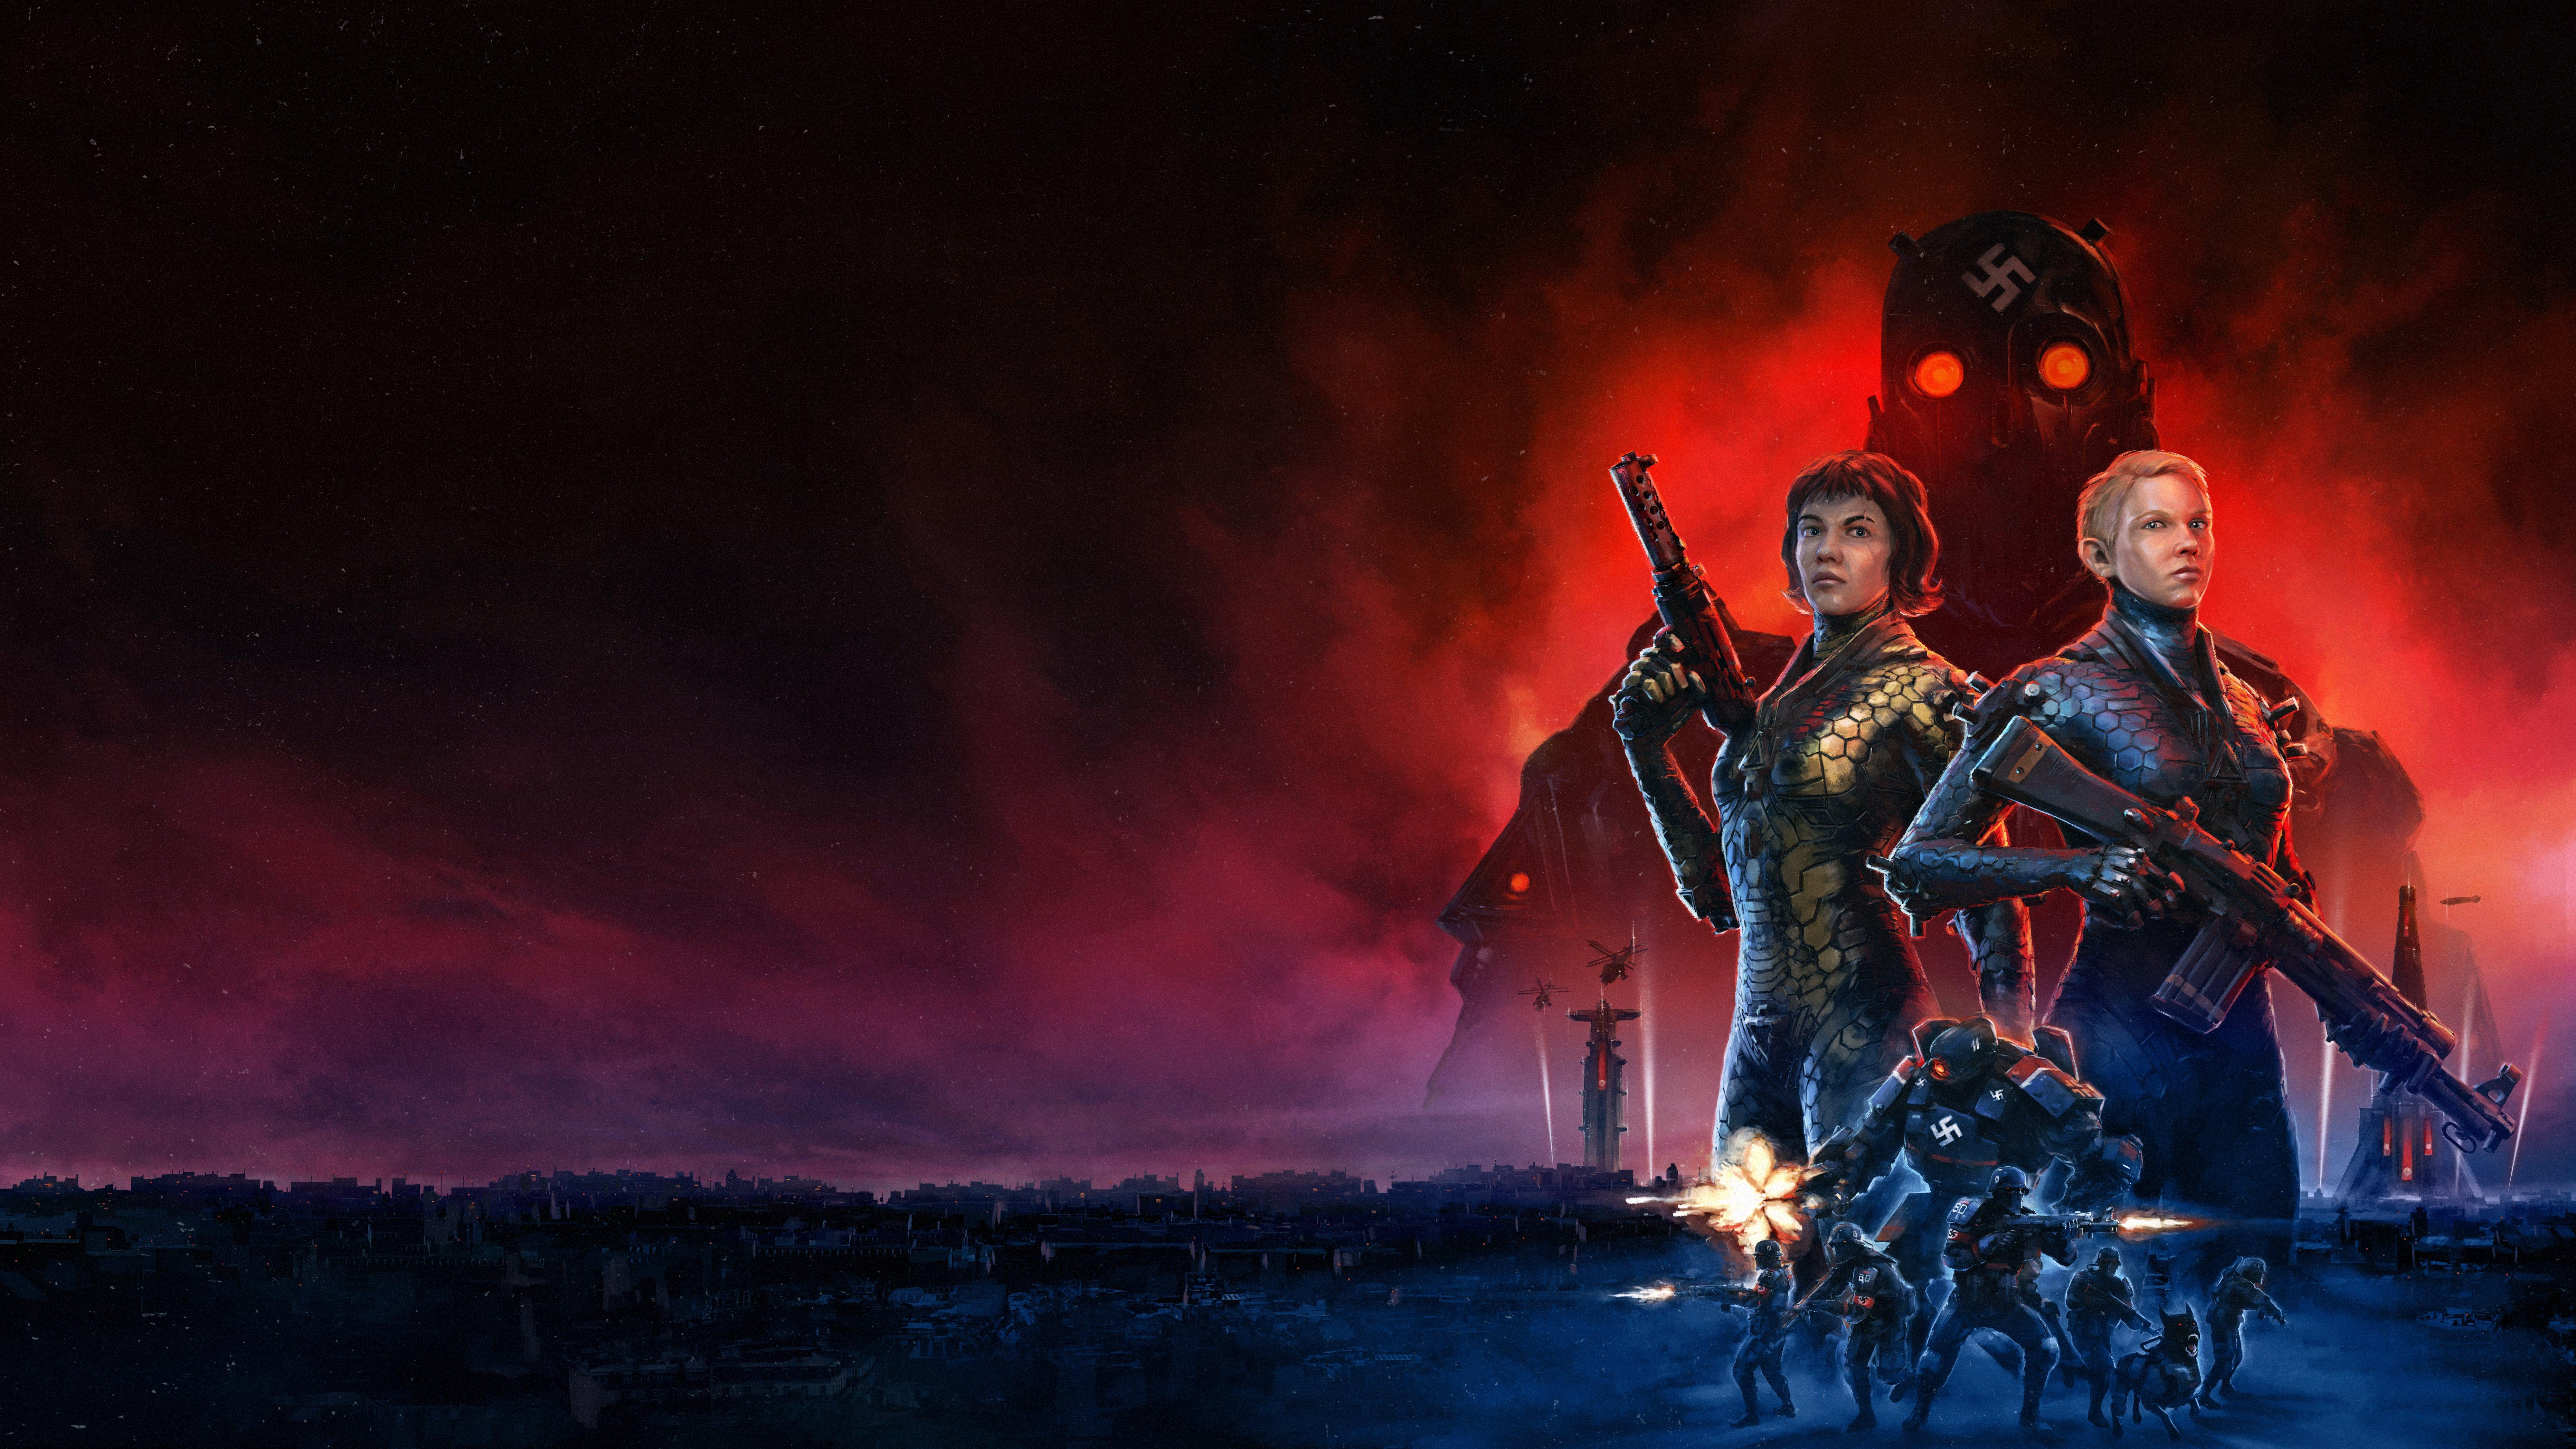 'Wolfenstein: Youngblood': Classic video game franchise gets influx of female empowerment